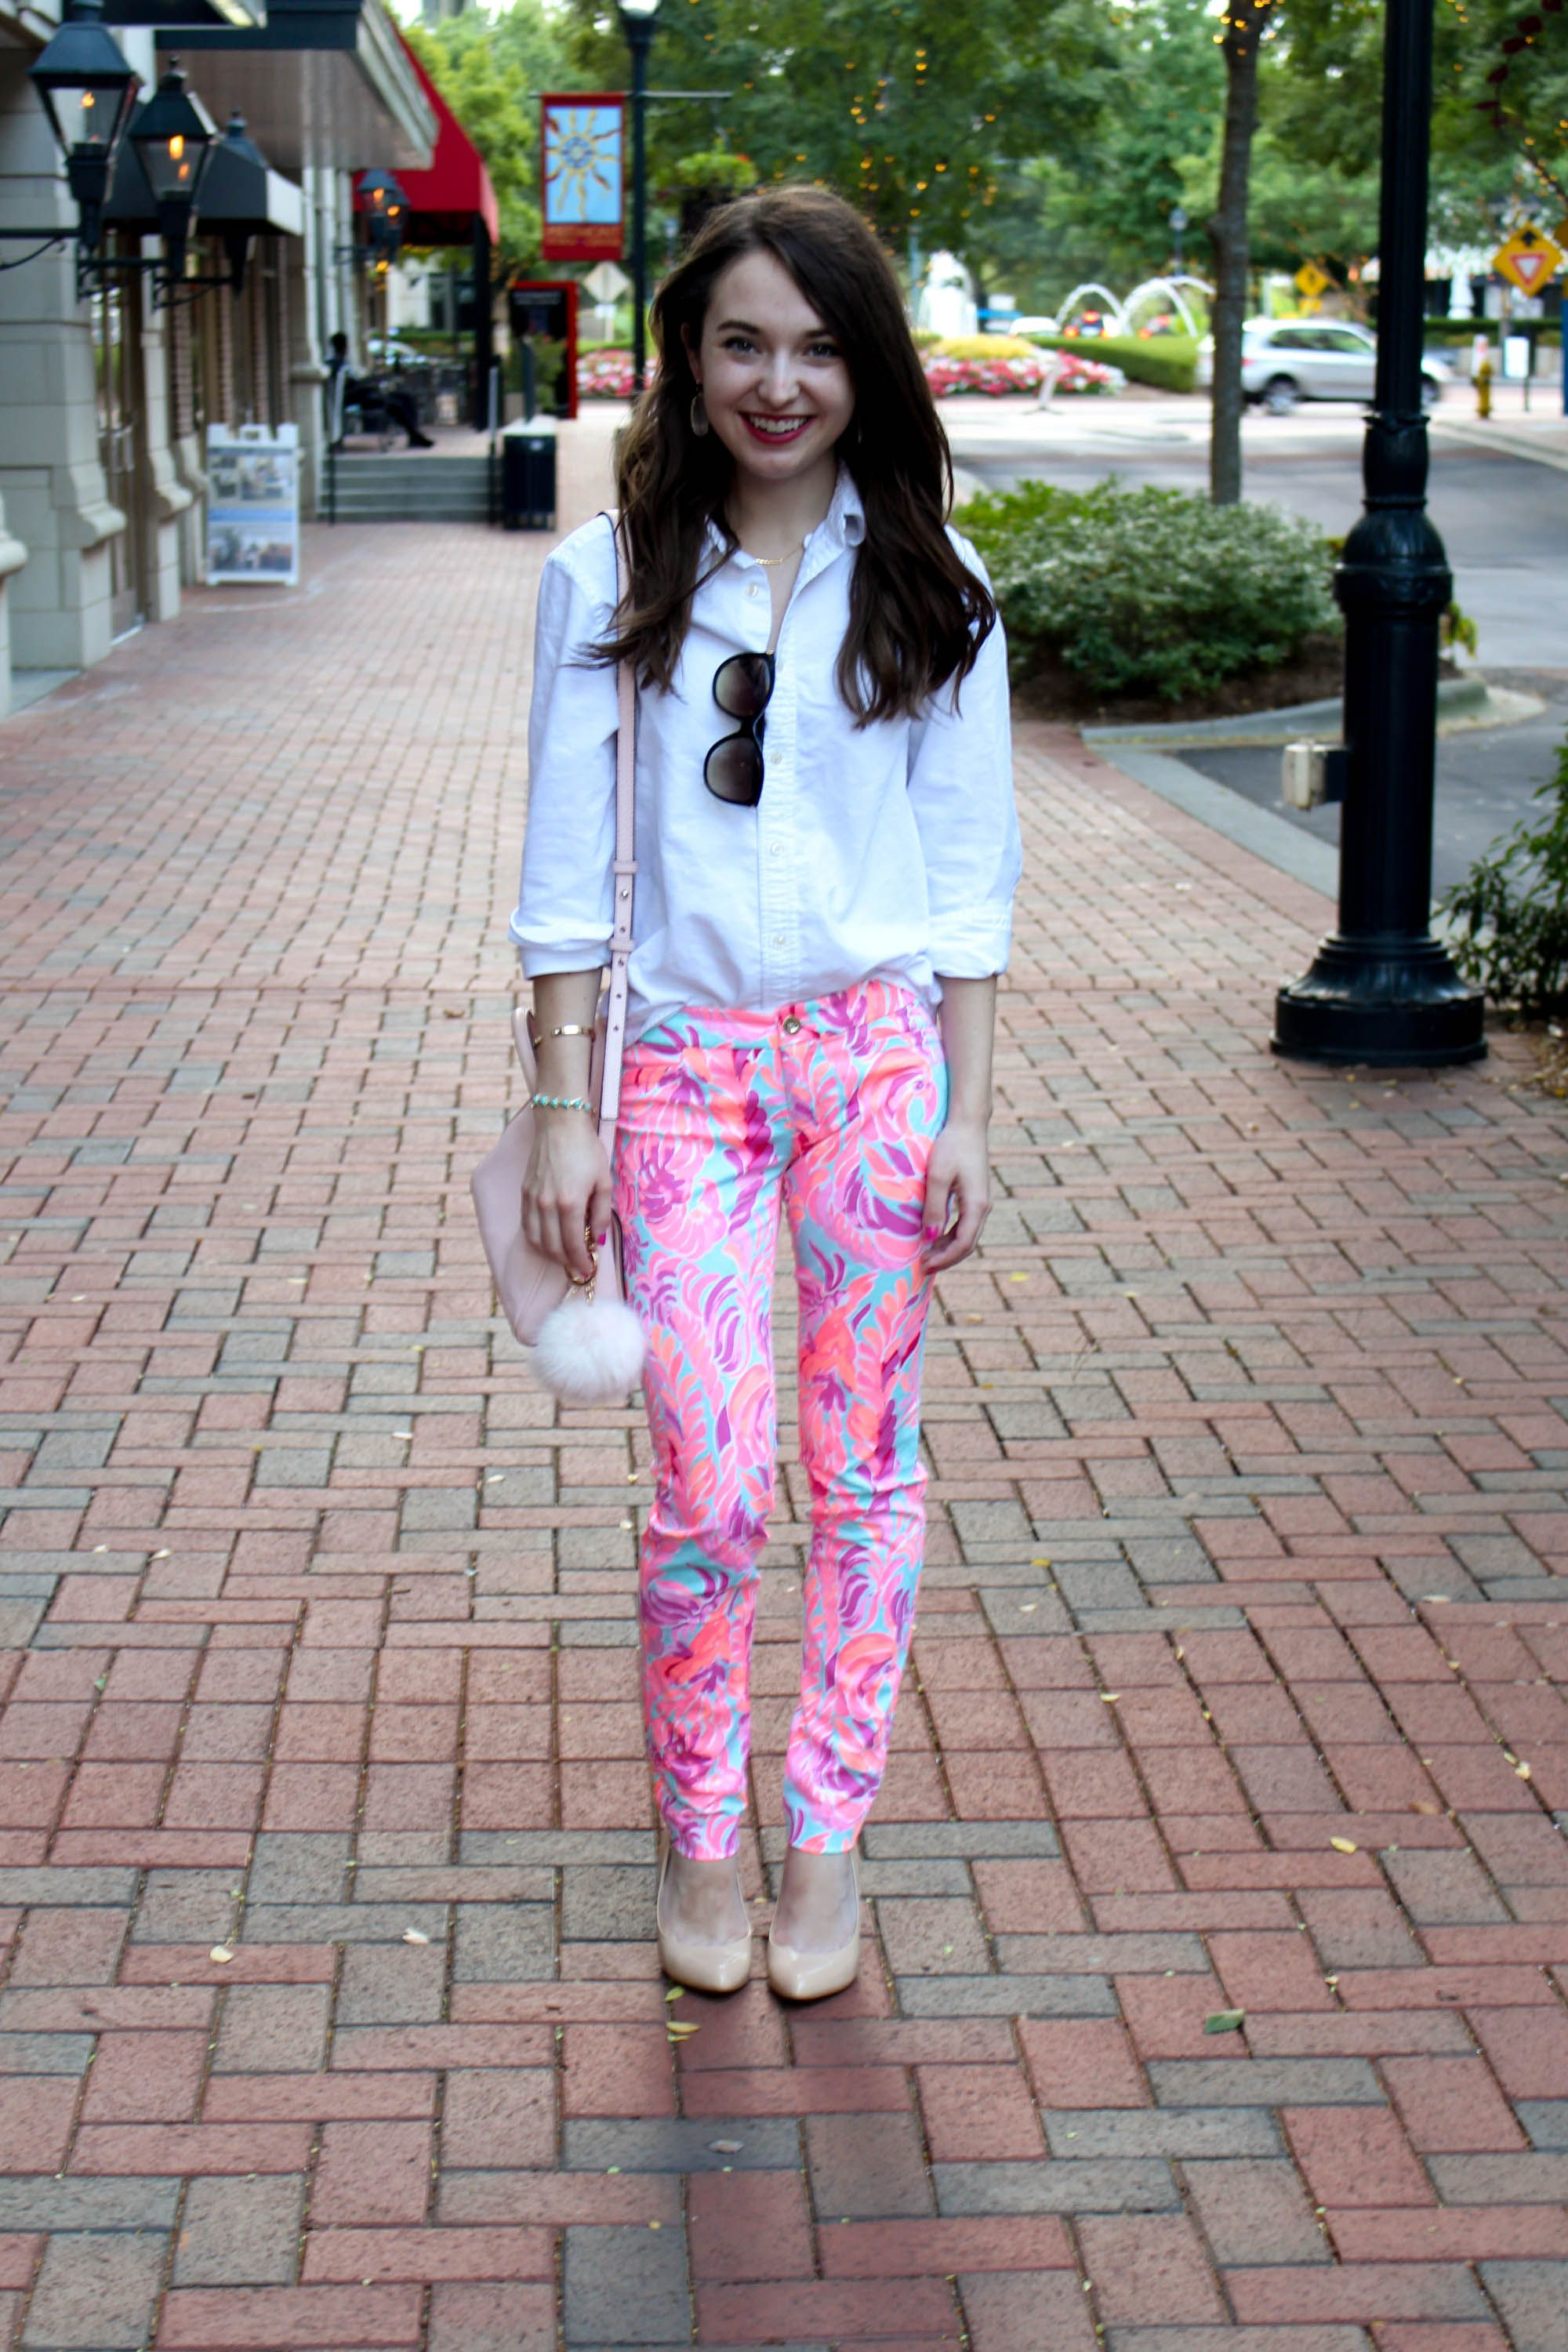 daac96448e39fd Lilly Pulitzer print Kelly pants styled with a button down and pumps for  work.